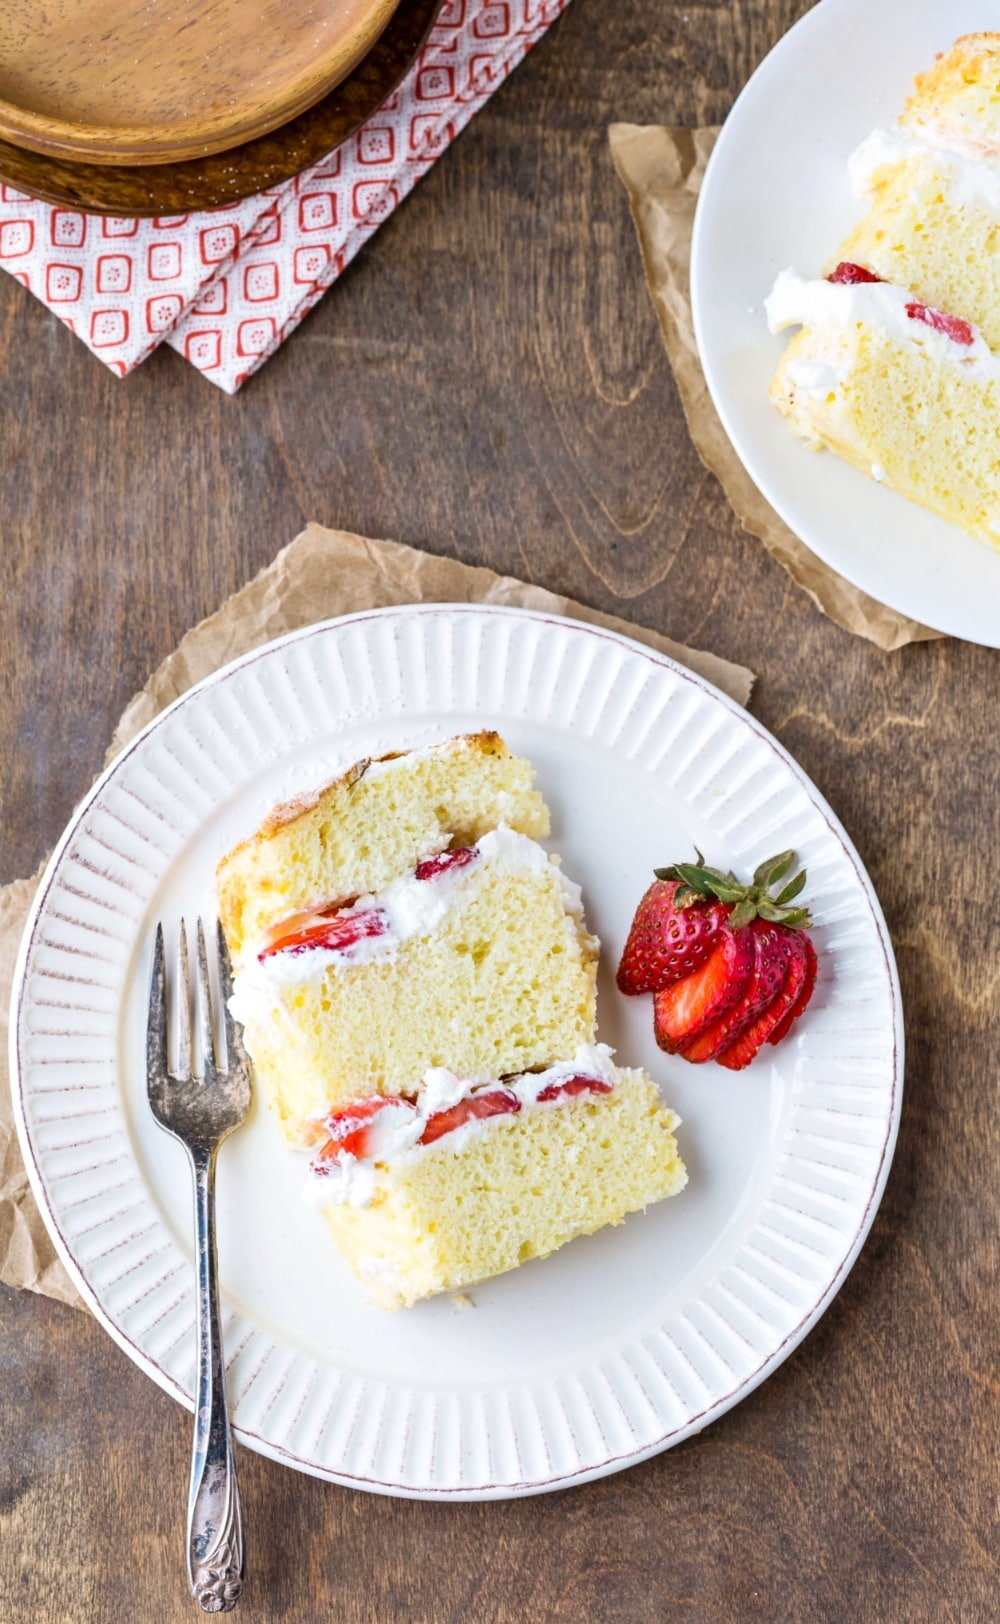 Strawberry Shortcake Cake I Heart Eating